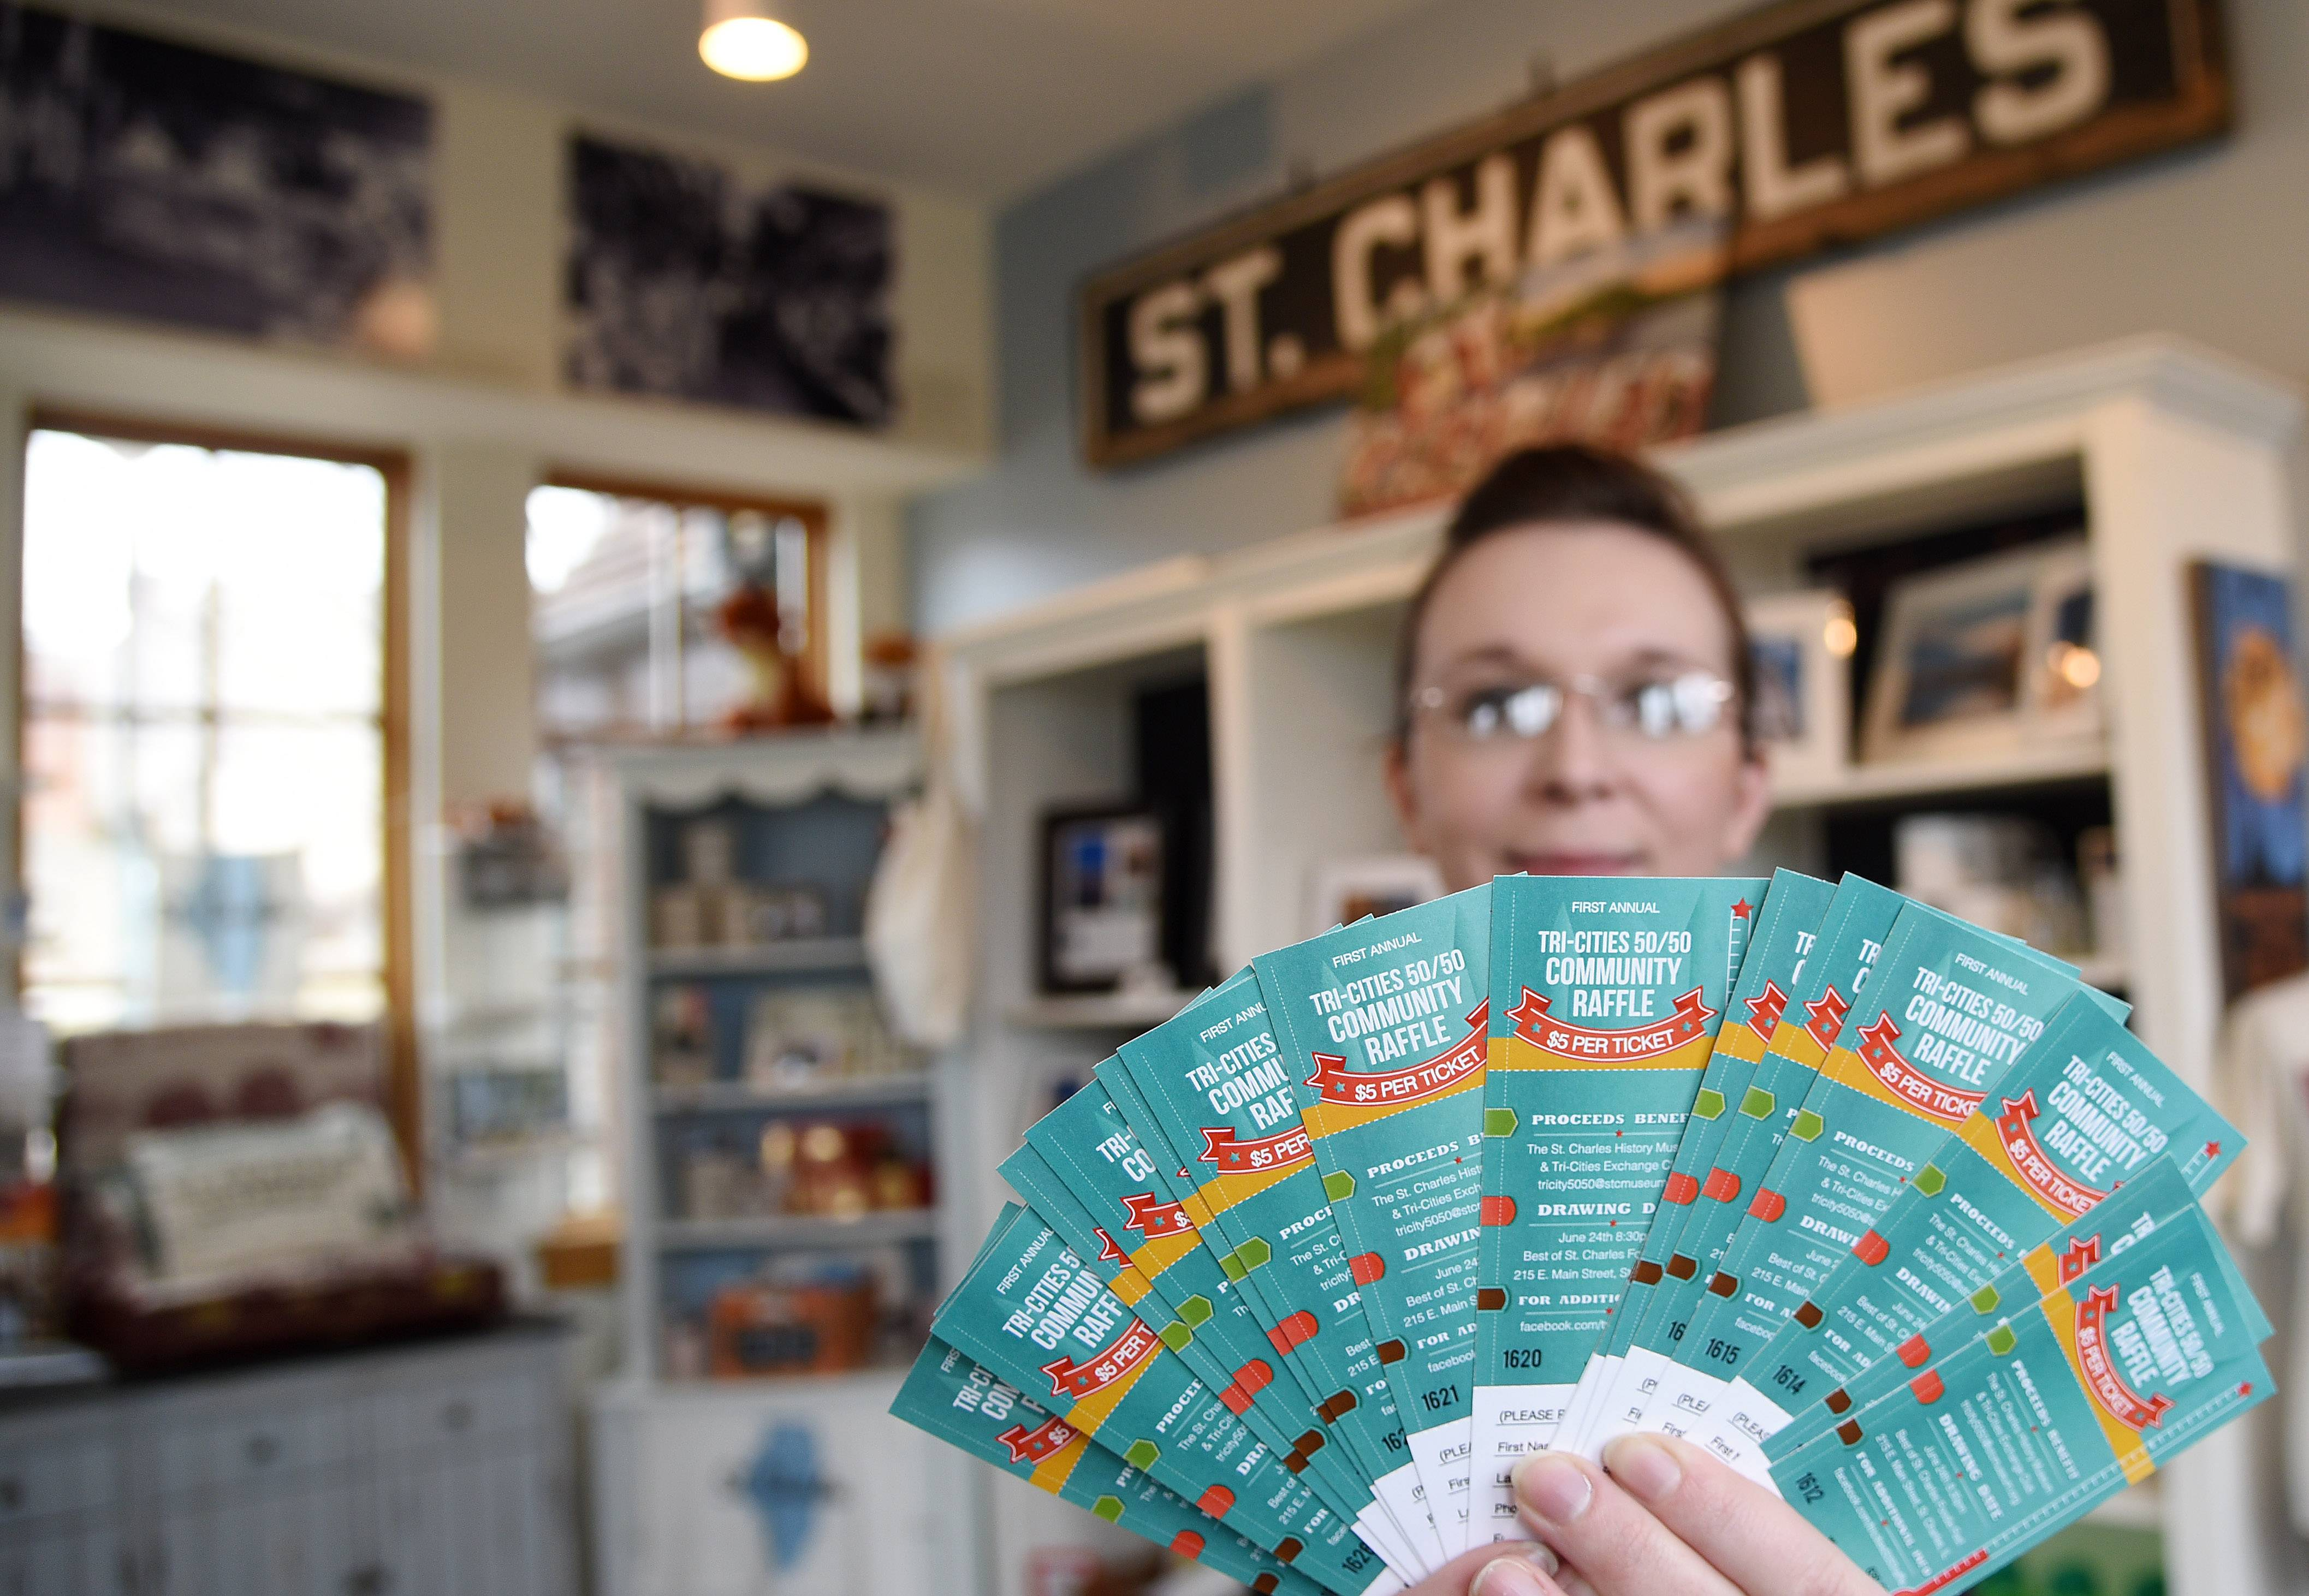 Alison Costanzo, executive director of the St. Charles History Museum, holds tickets for this year's 50-50 raffle. They're hoping to sell 8,000 tickets at $5 a piece, leaving a $40,000 prize to split.